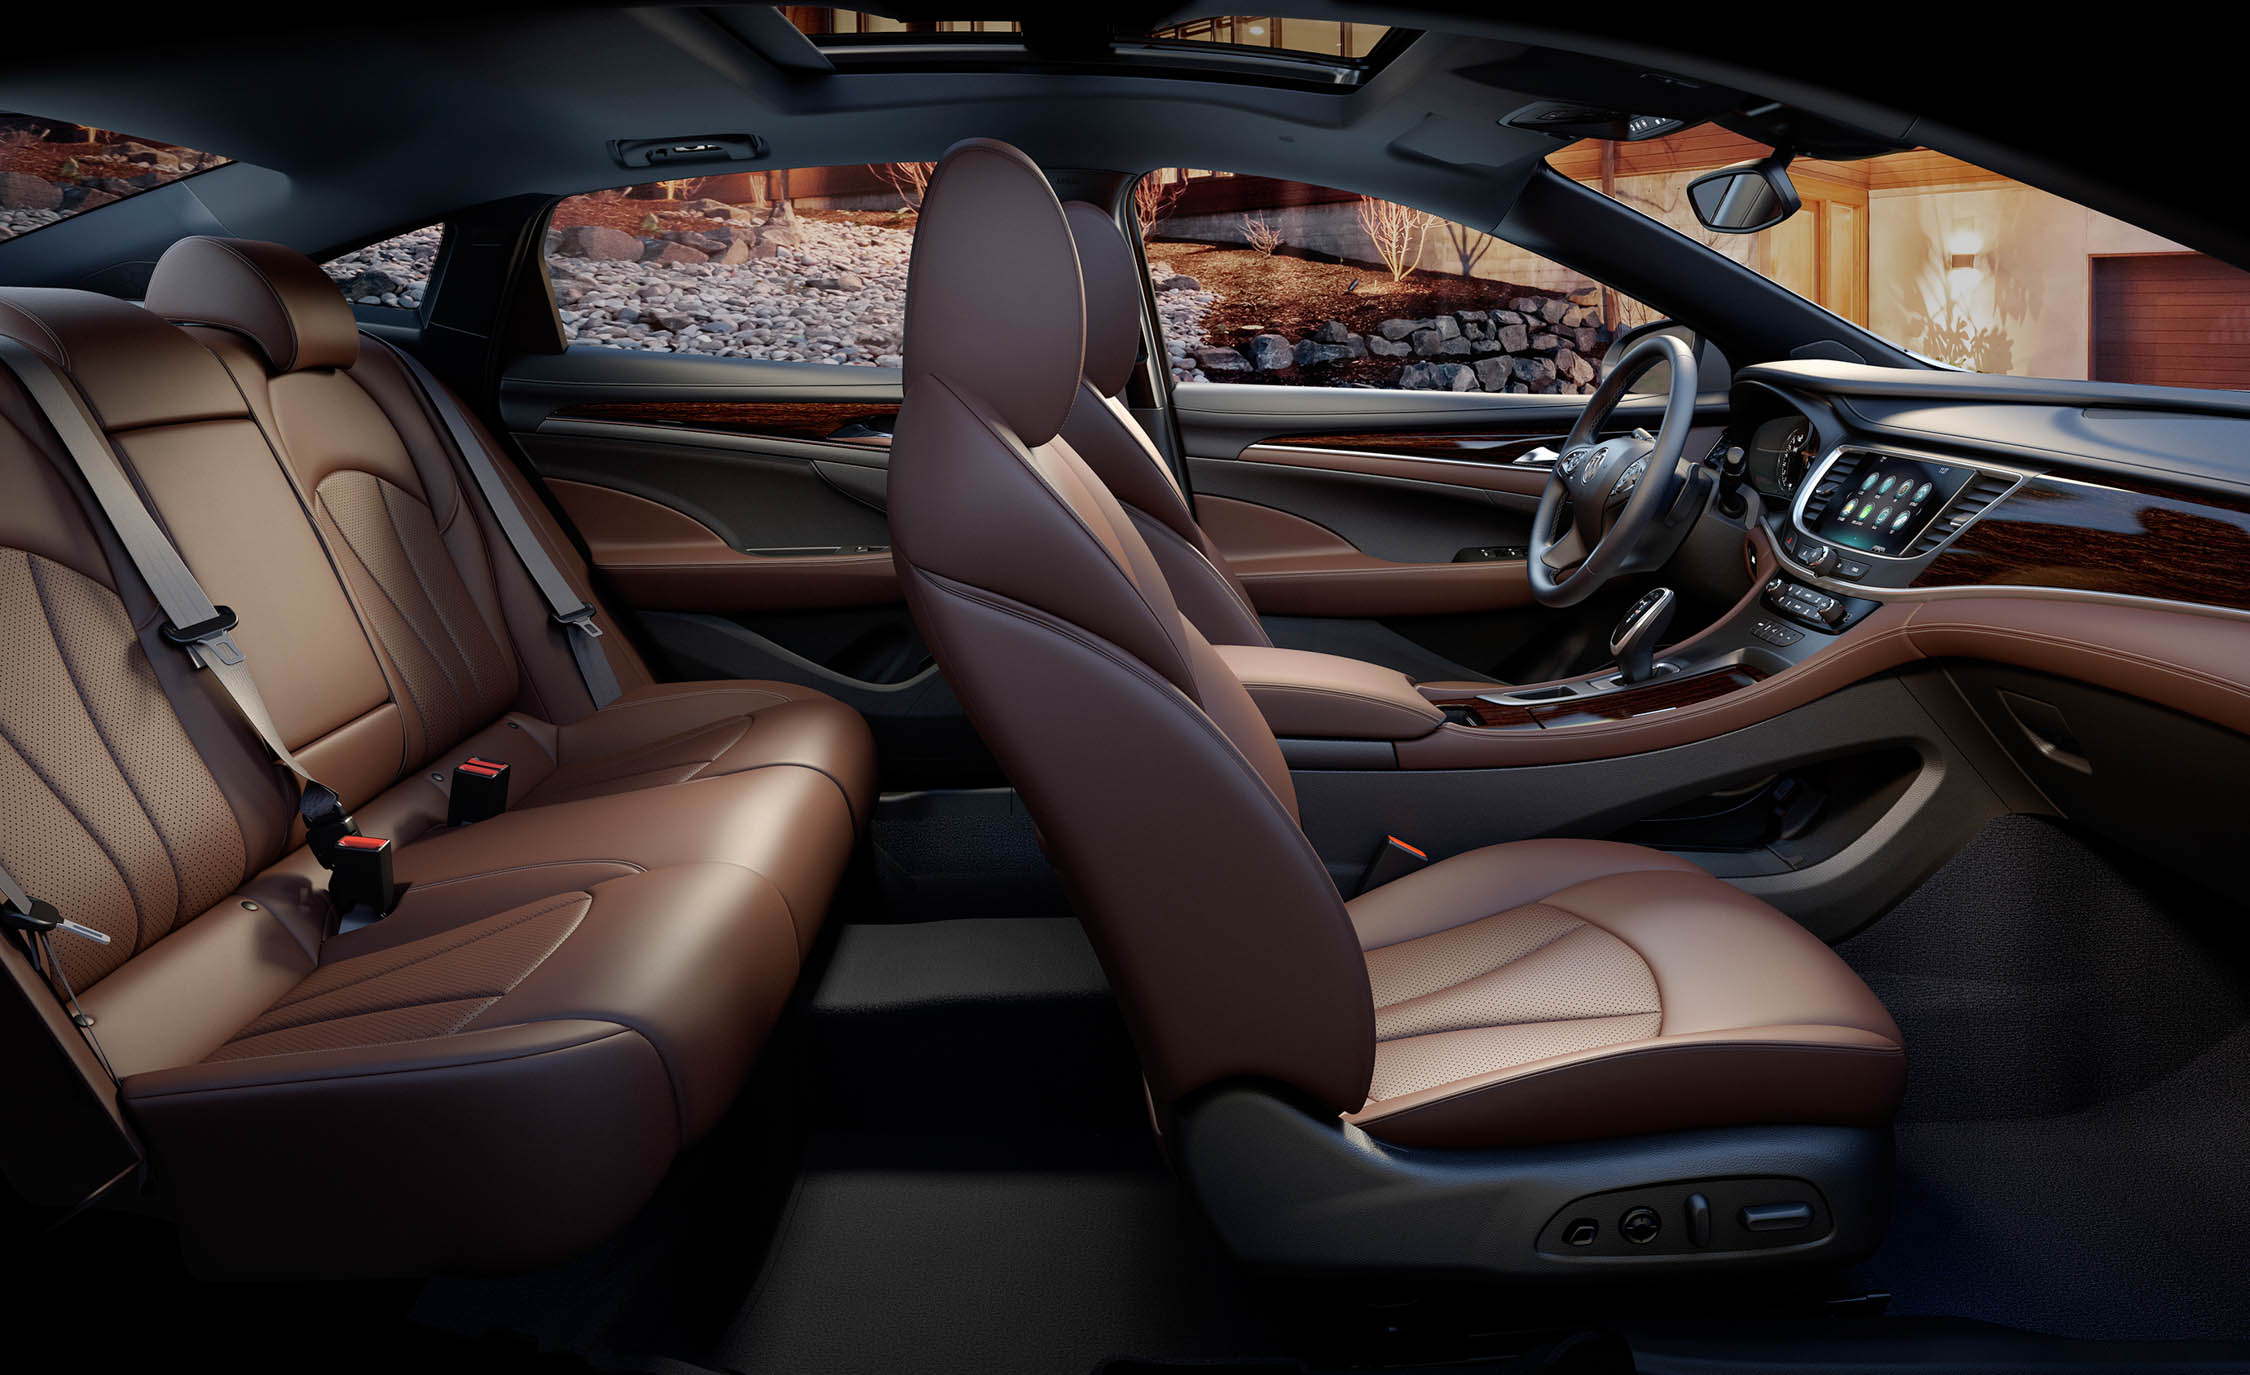 2017 Buick Lacrosse Interior Preview (Photo 22 of 26)